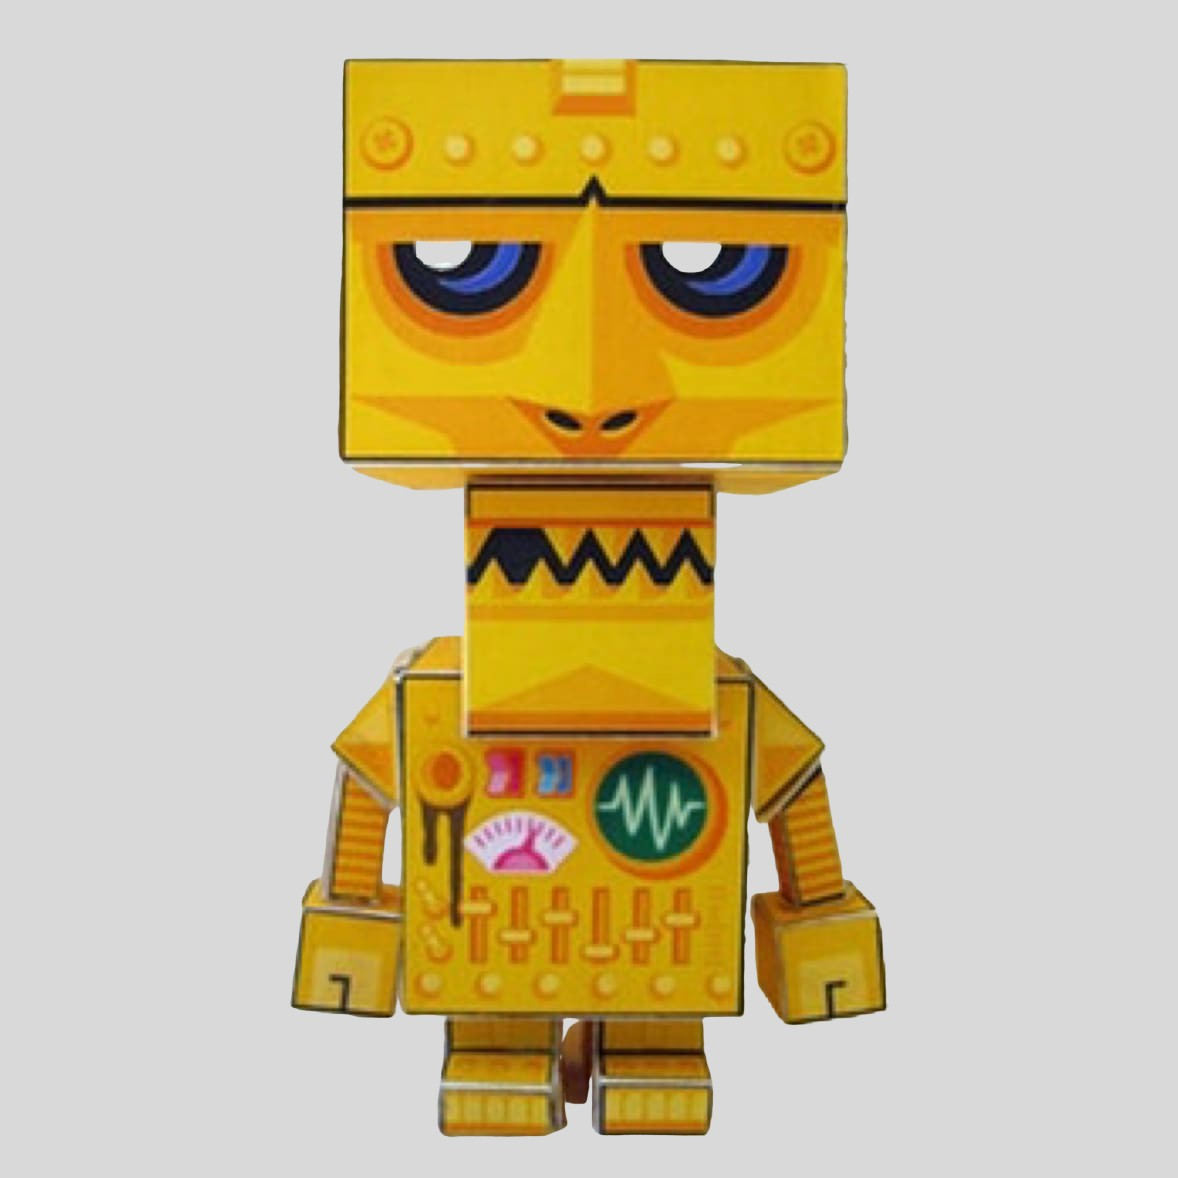 Free Download - Fold Your own Paper Robot